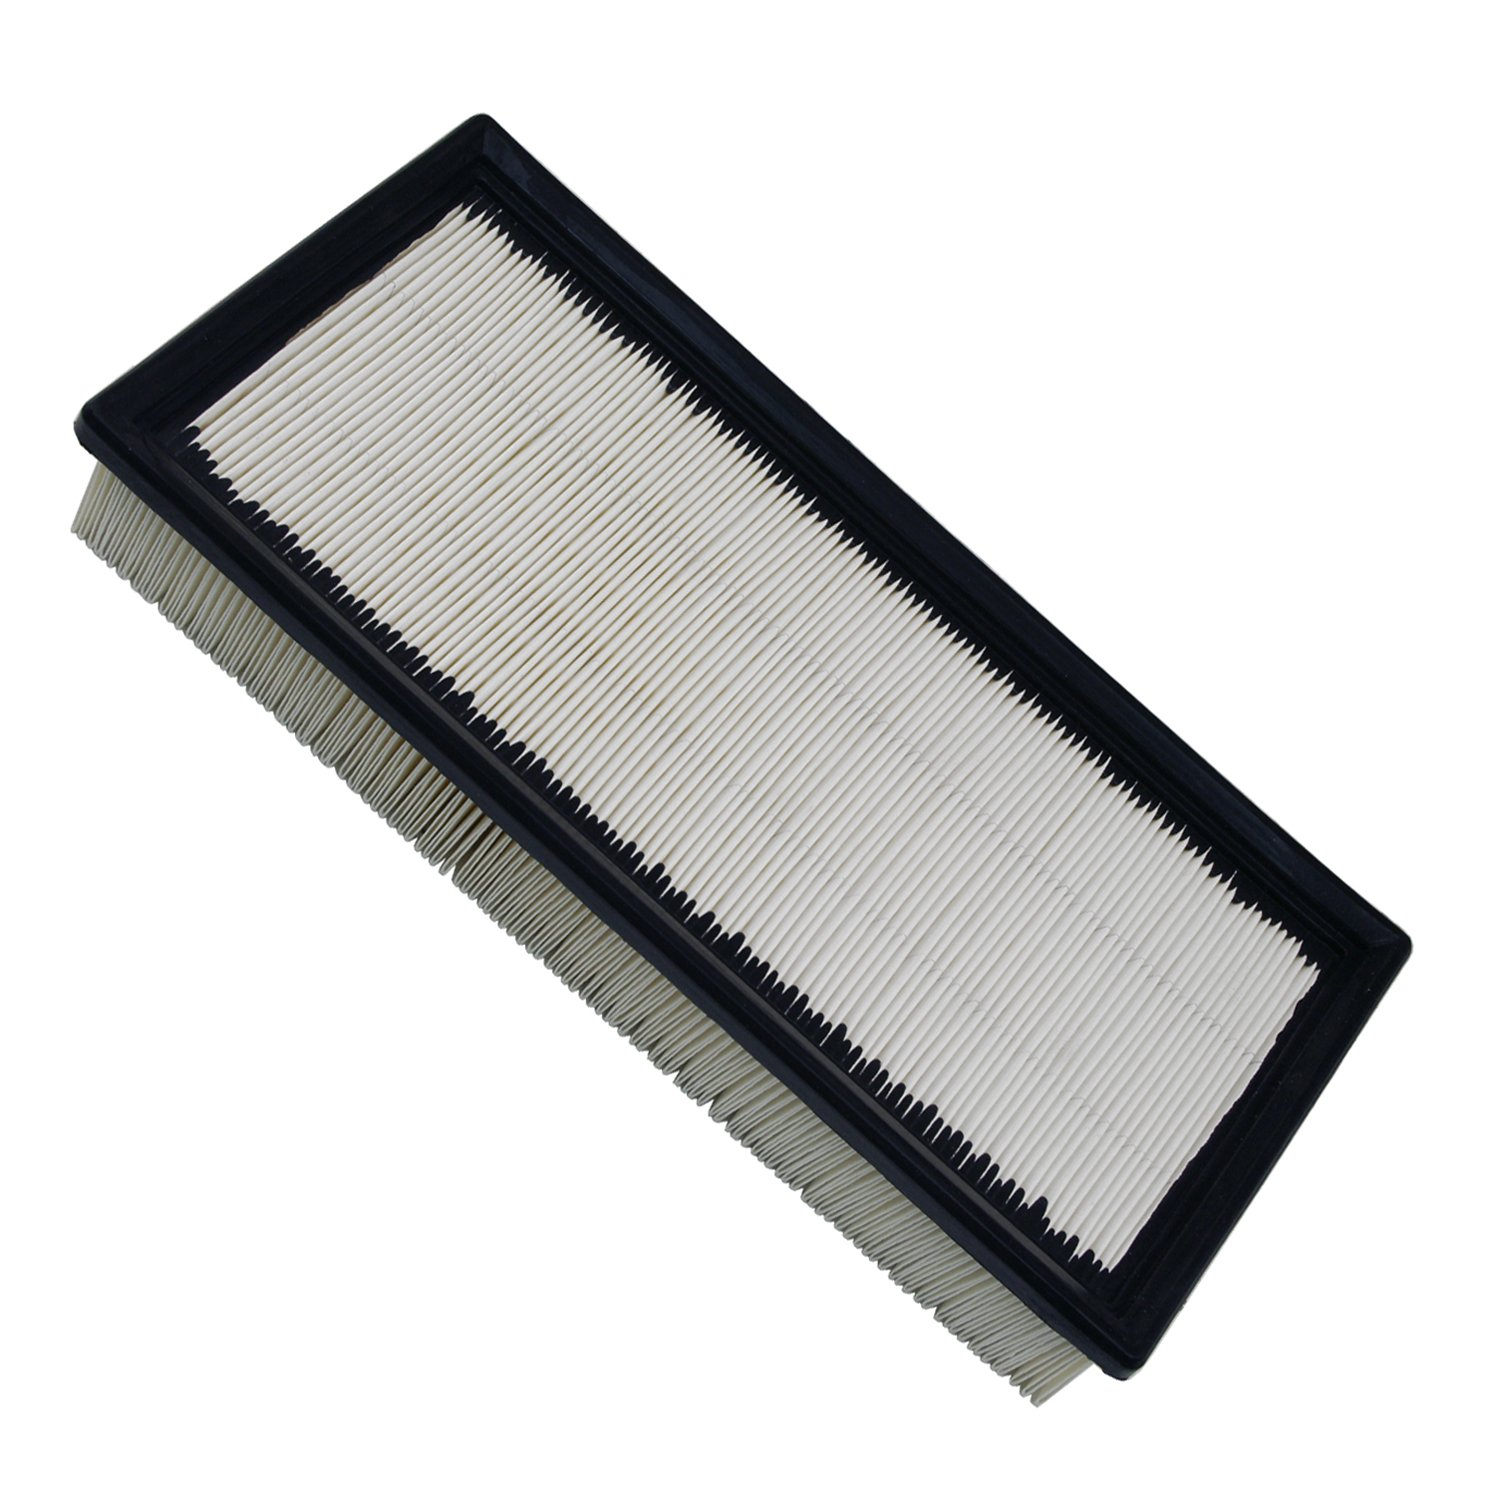 Beck Arnley 042-1510 Air Filter BA042-1510